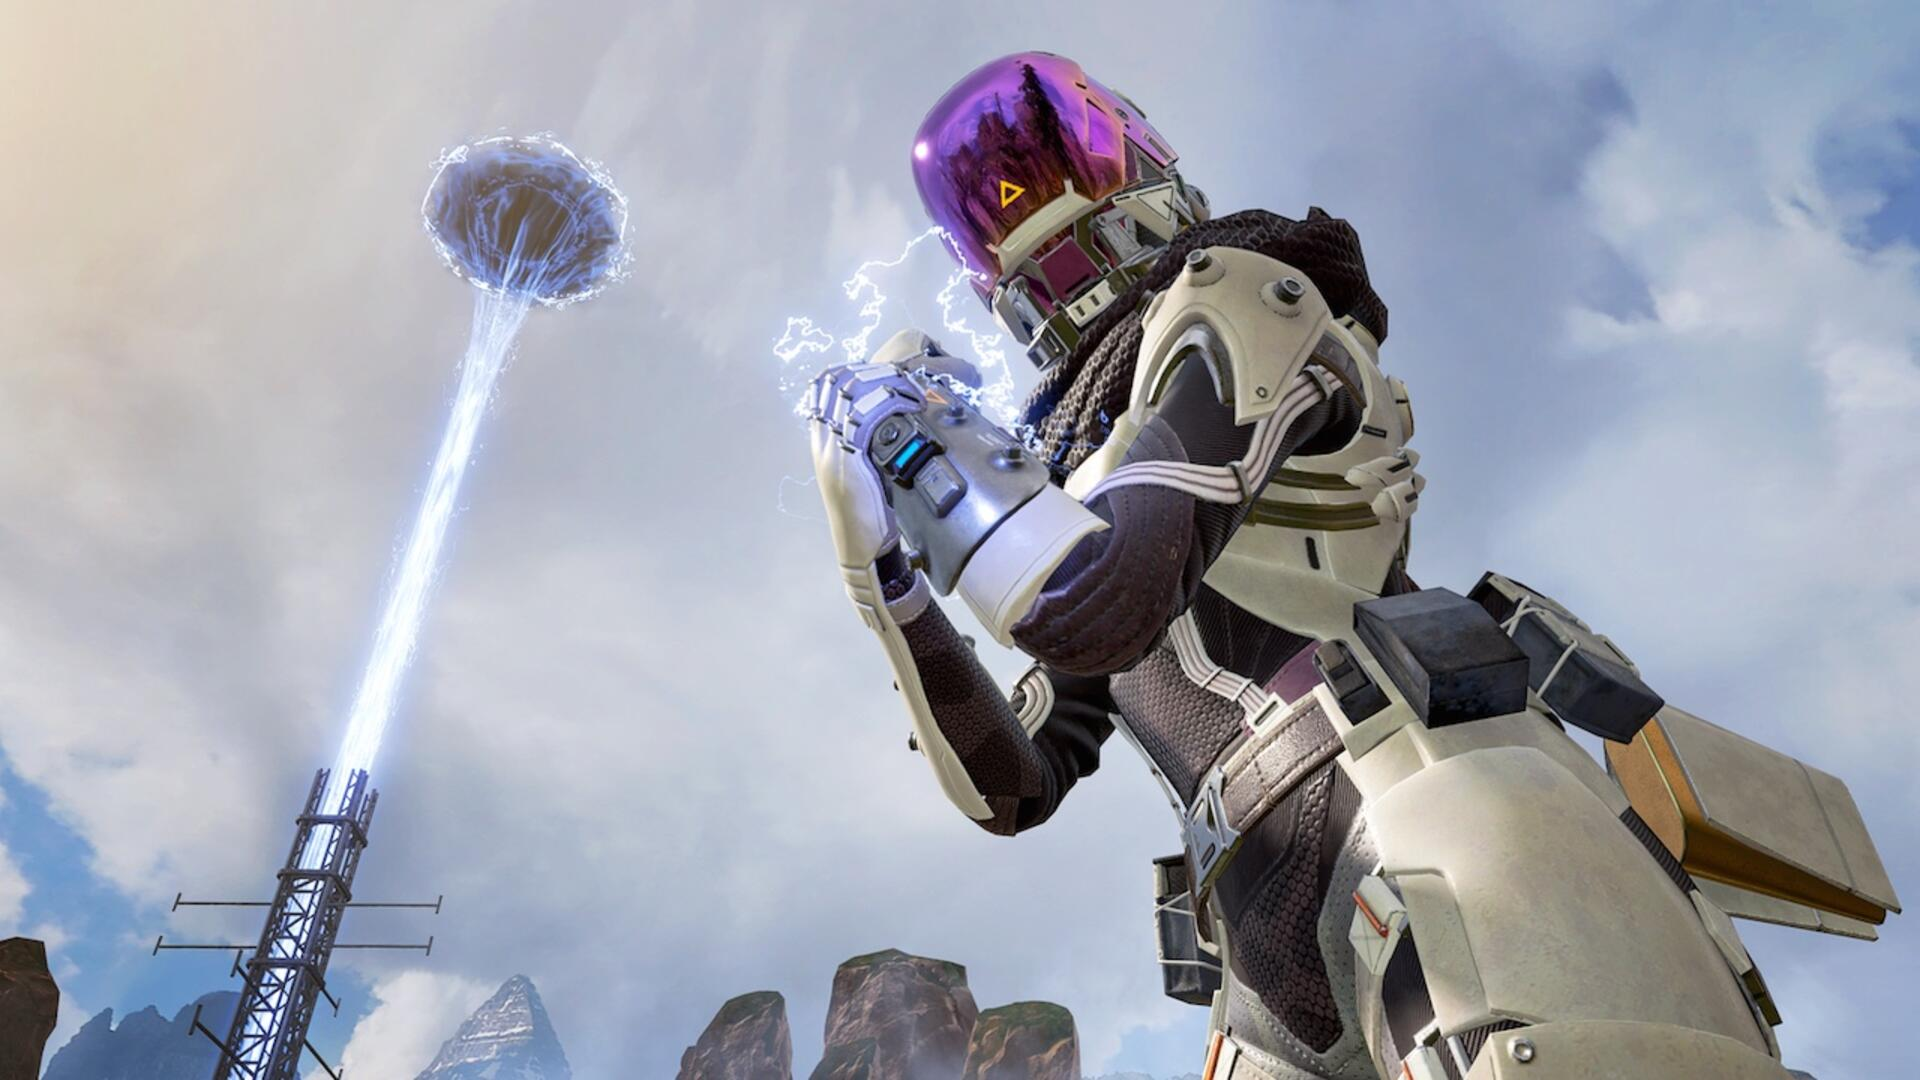 Apex Legends' Wraith-Themed Voidwalker Event Will Bring New Lore and Loot